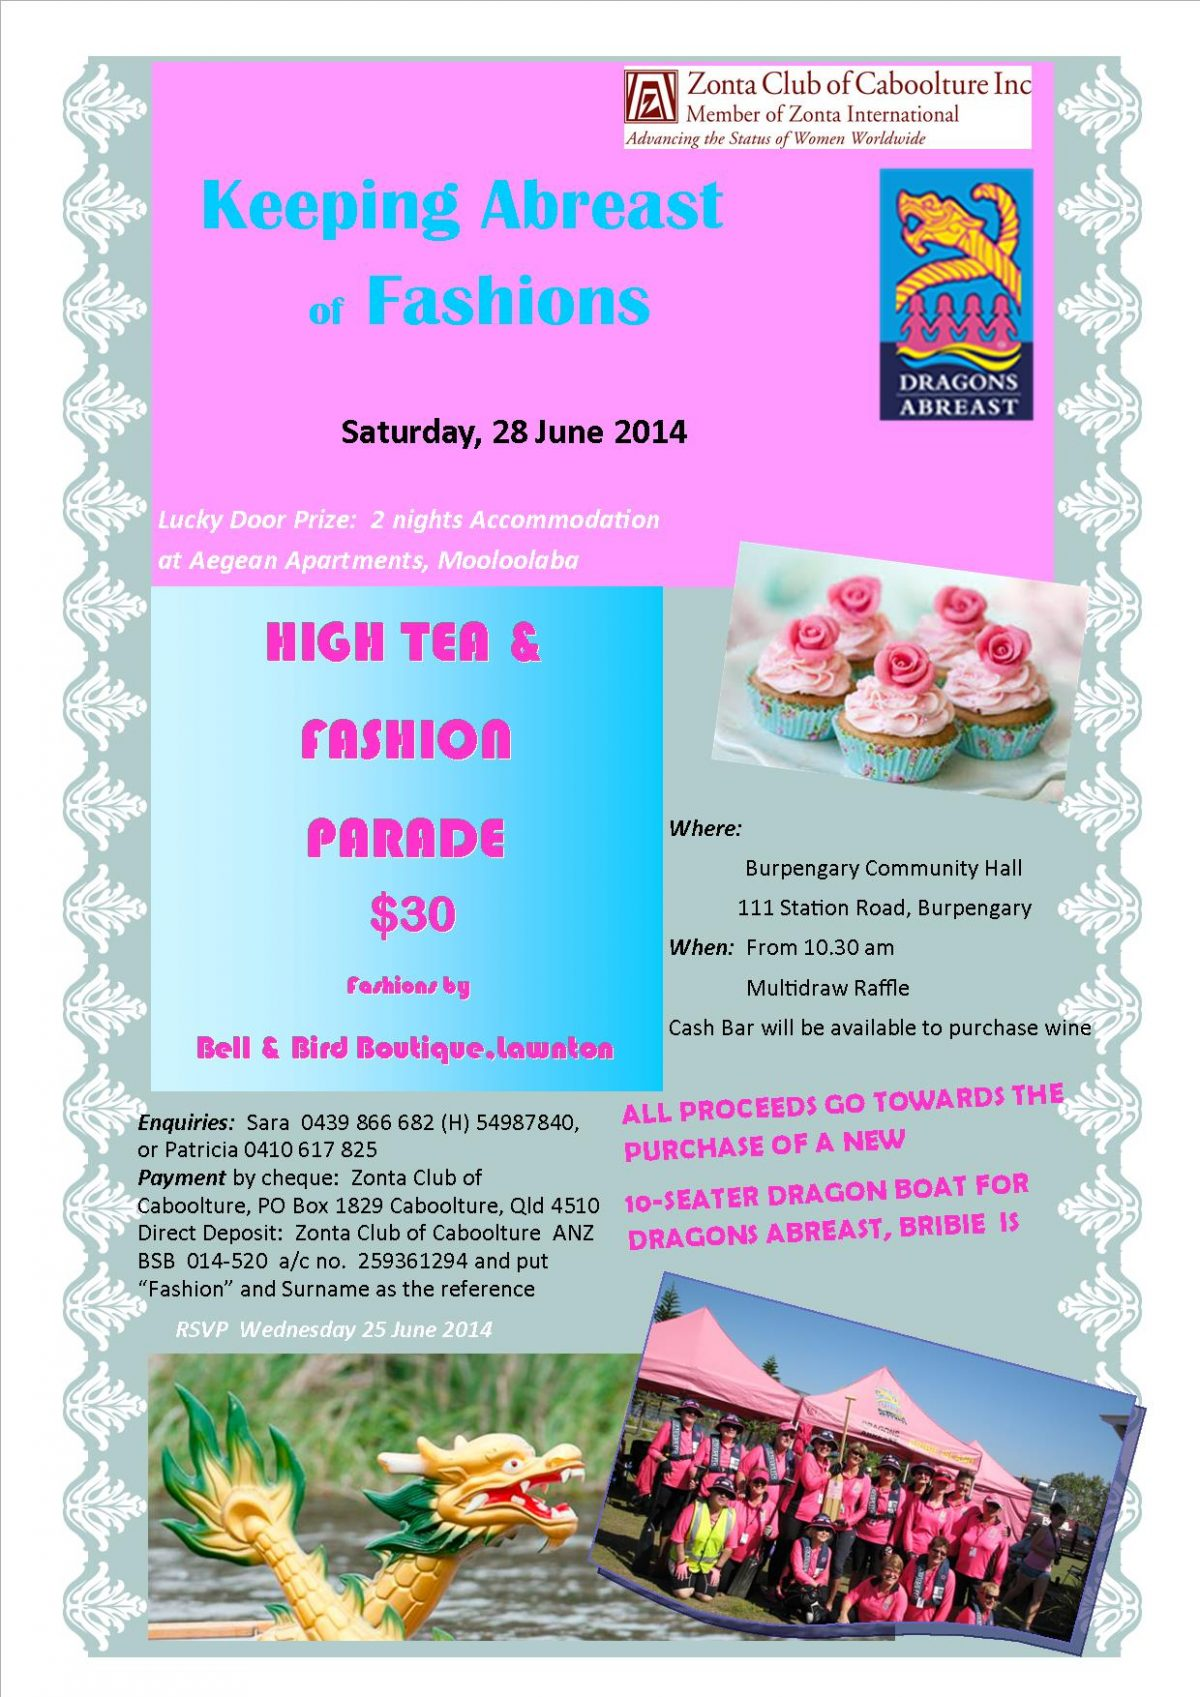 High Tea for raising funds to buy a boat for Dragons Abreast, Bribie Island